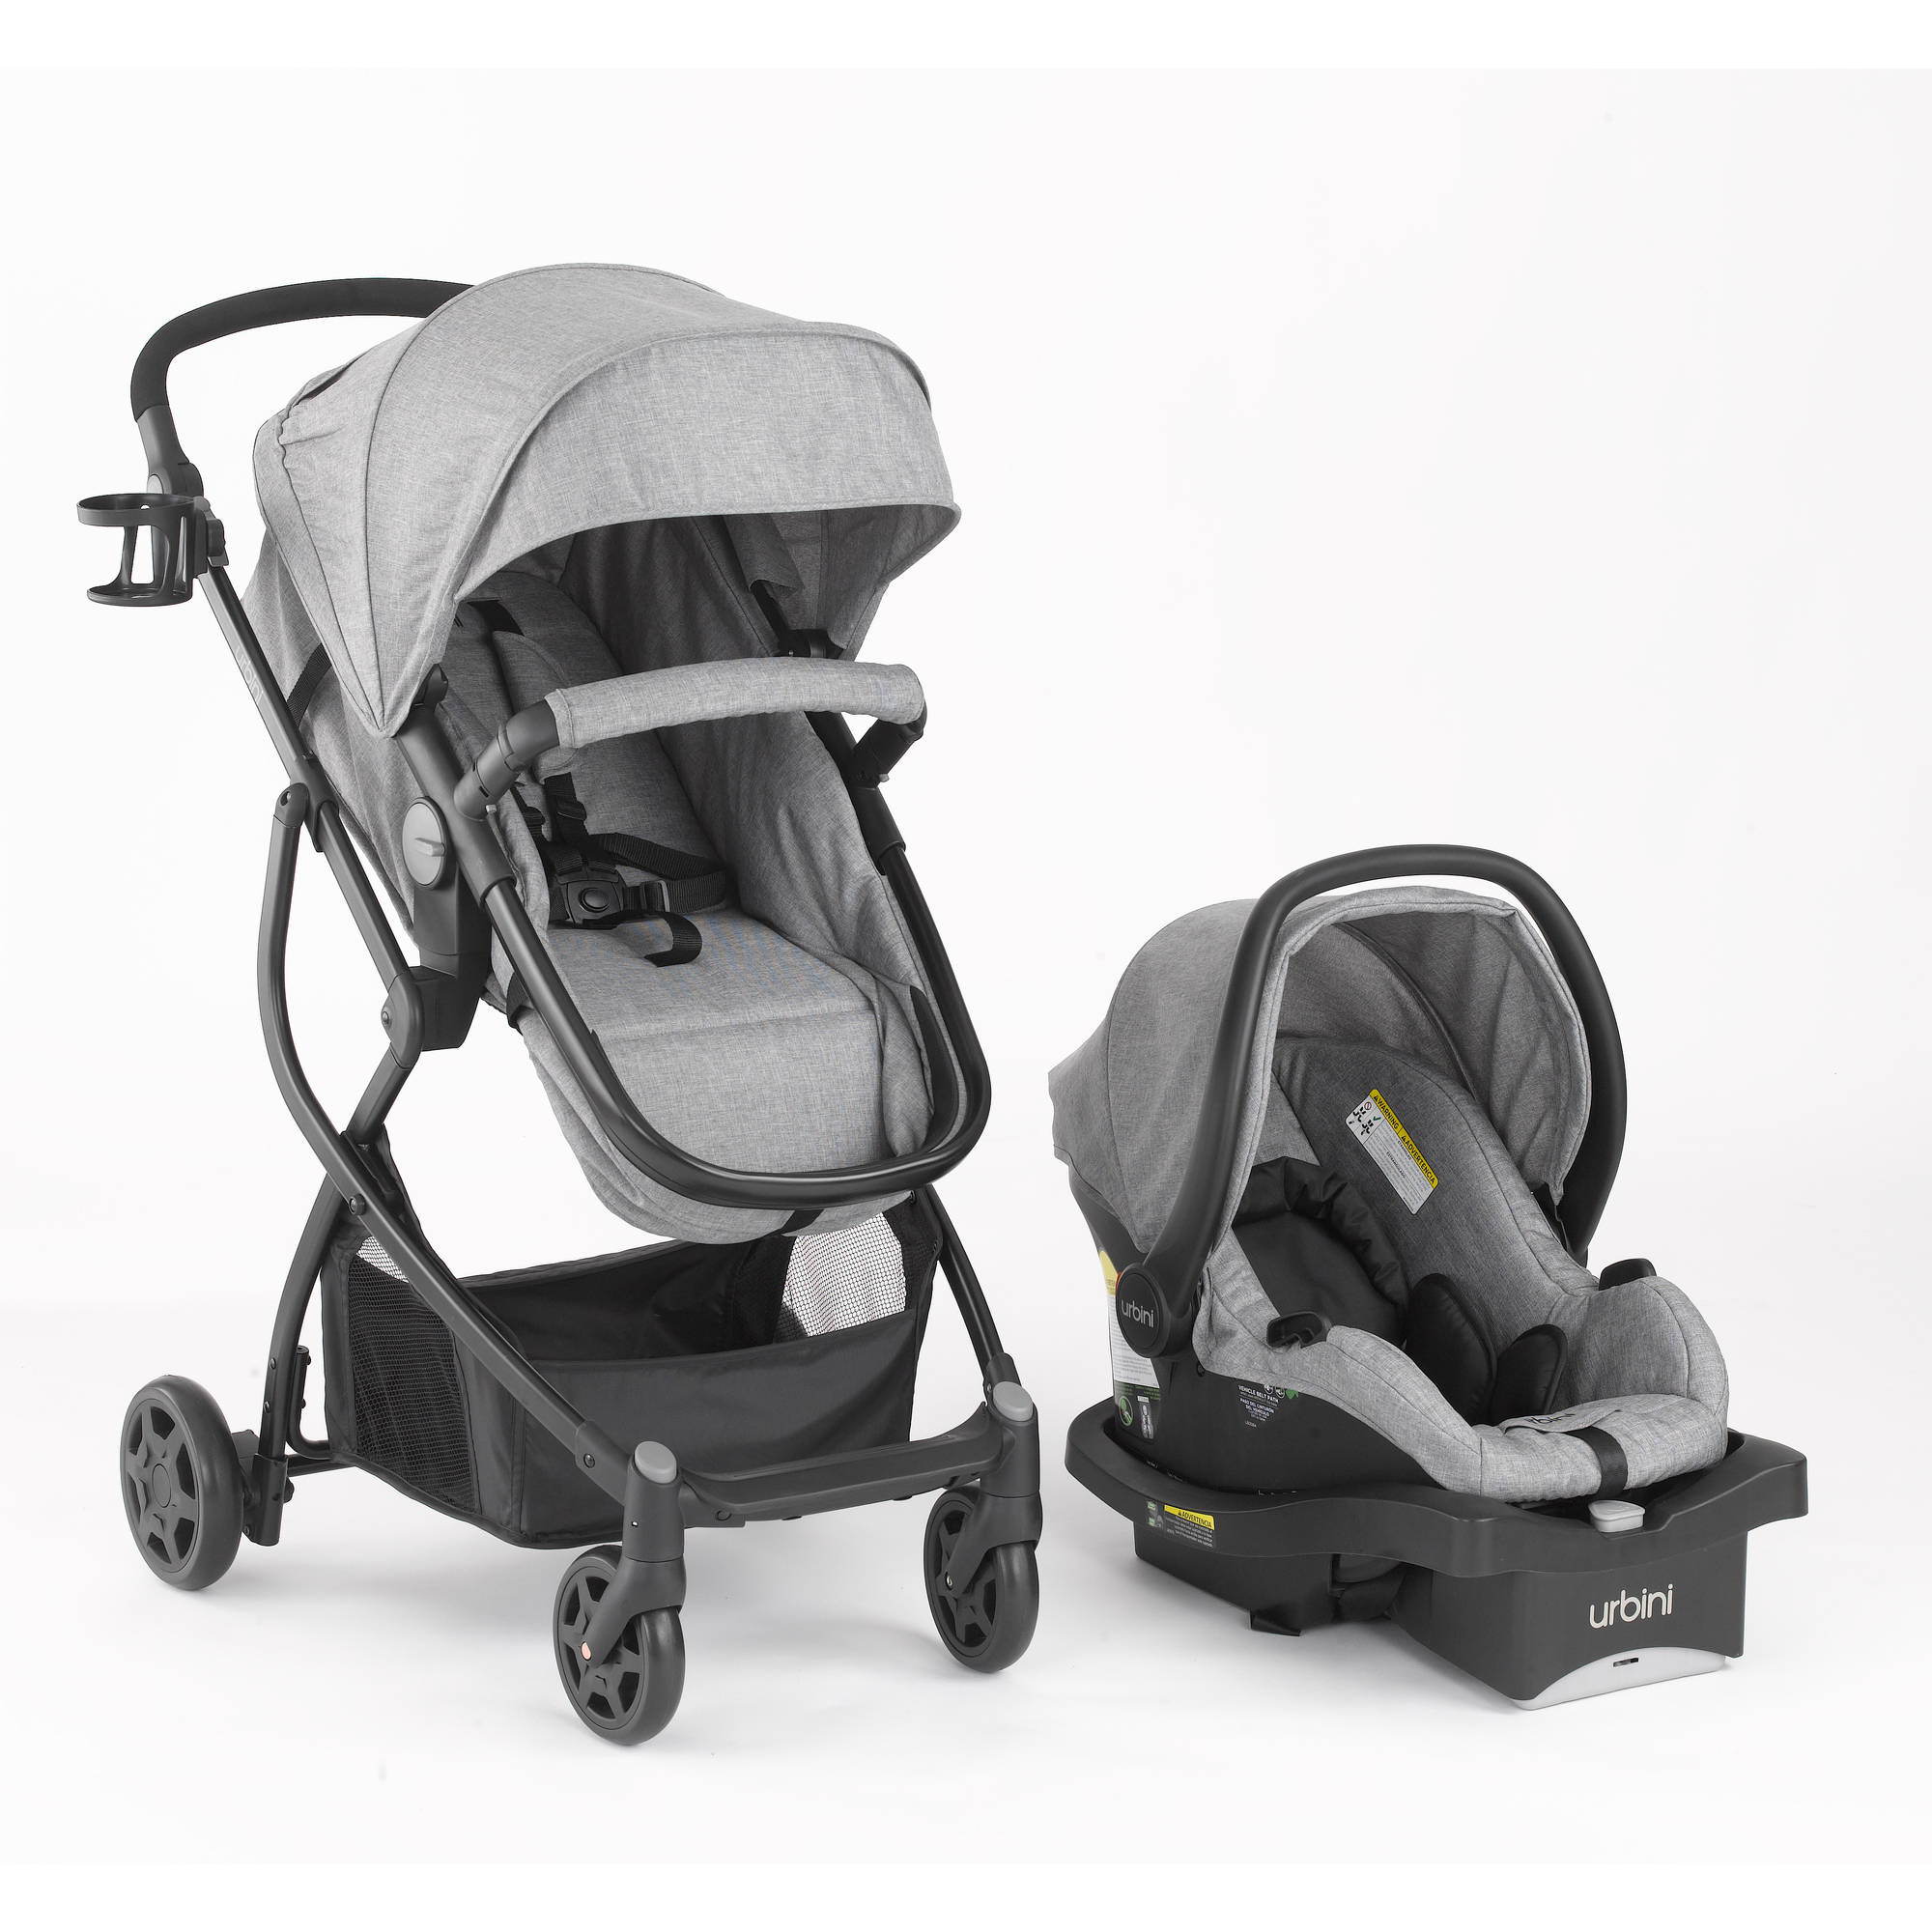 Urbini Omni Plus 3 in 1 Travel System, Special Edition